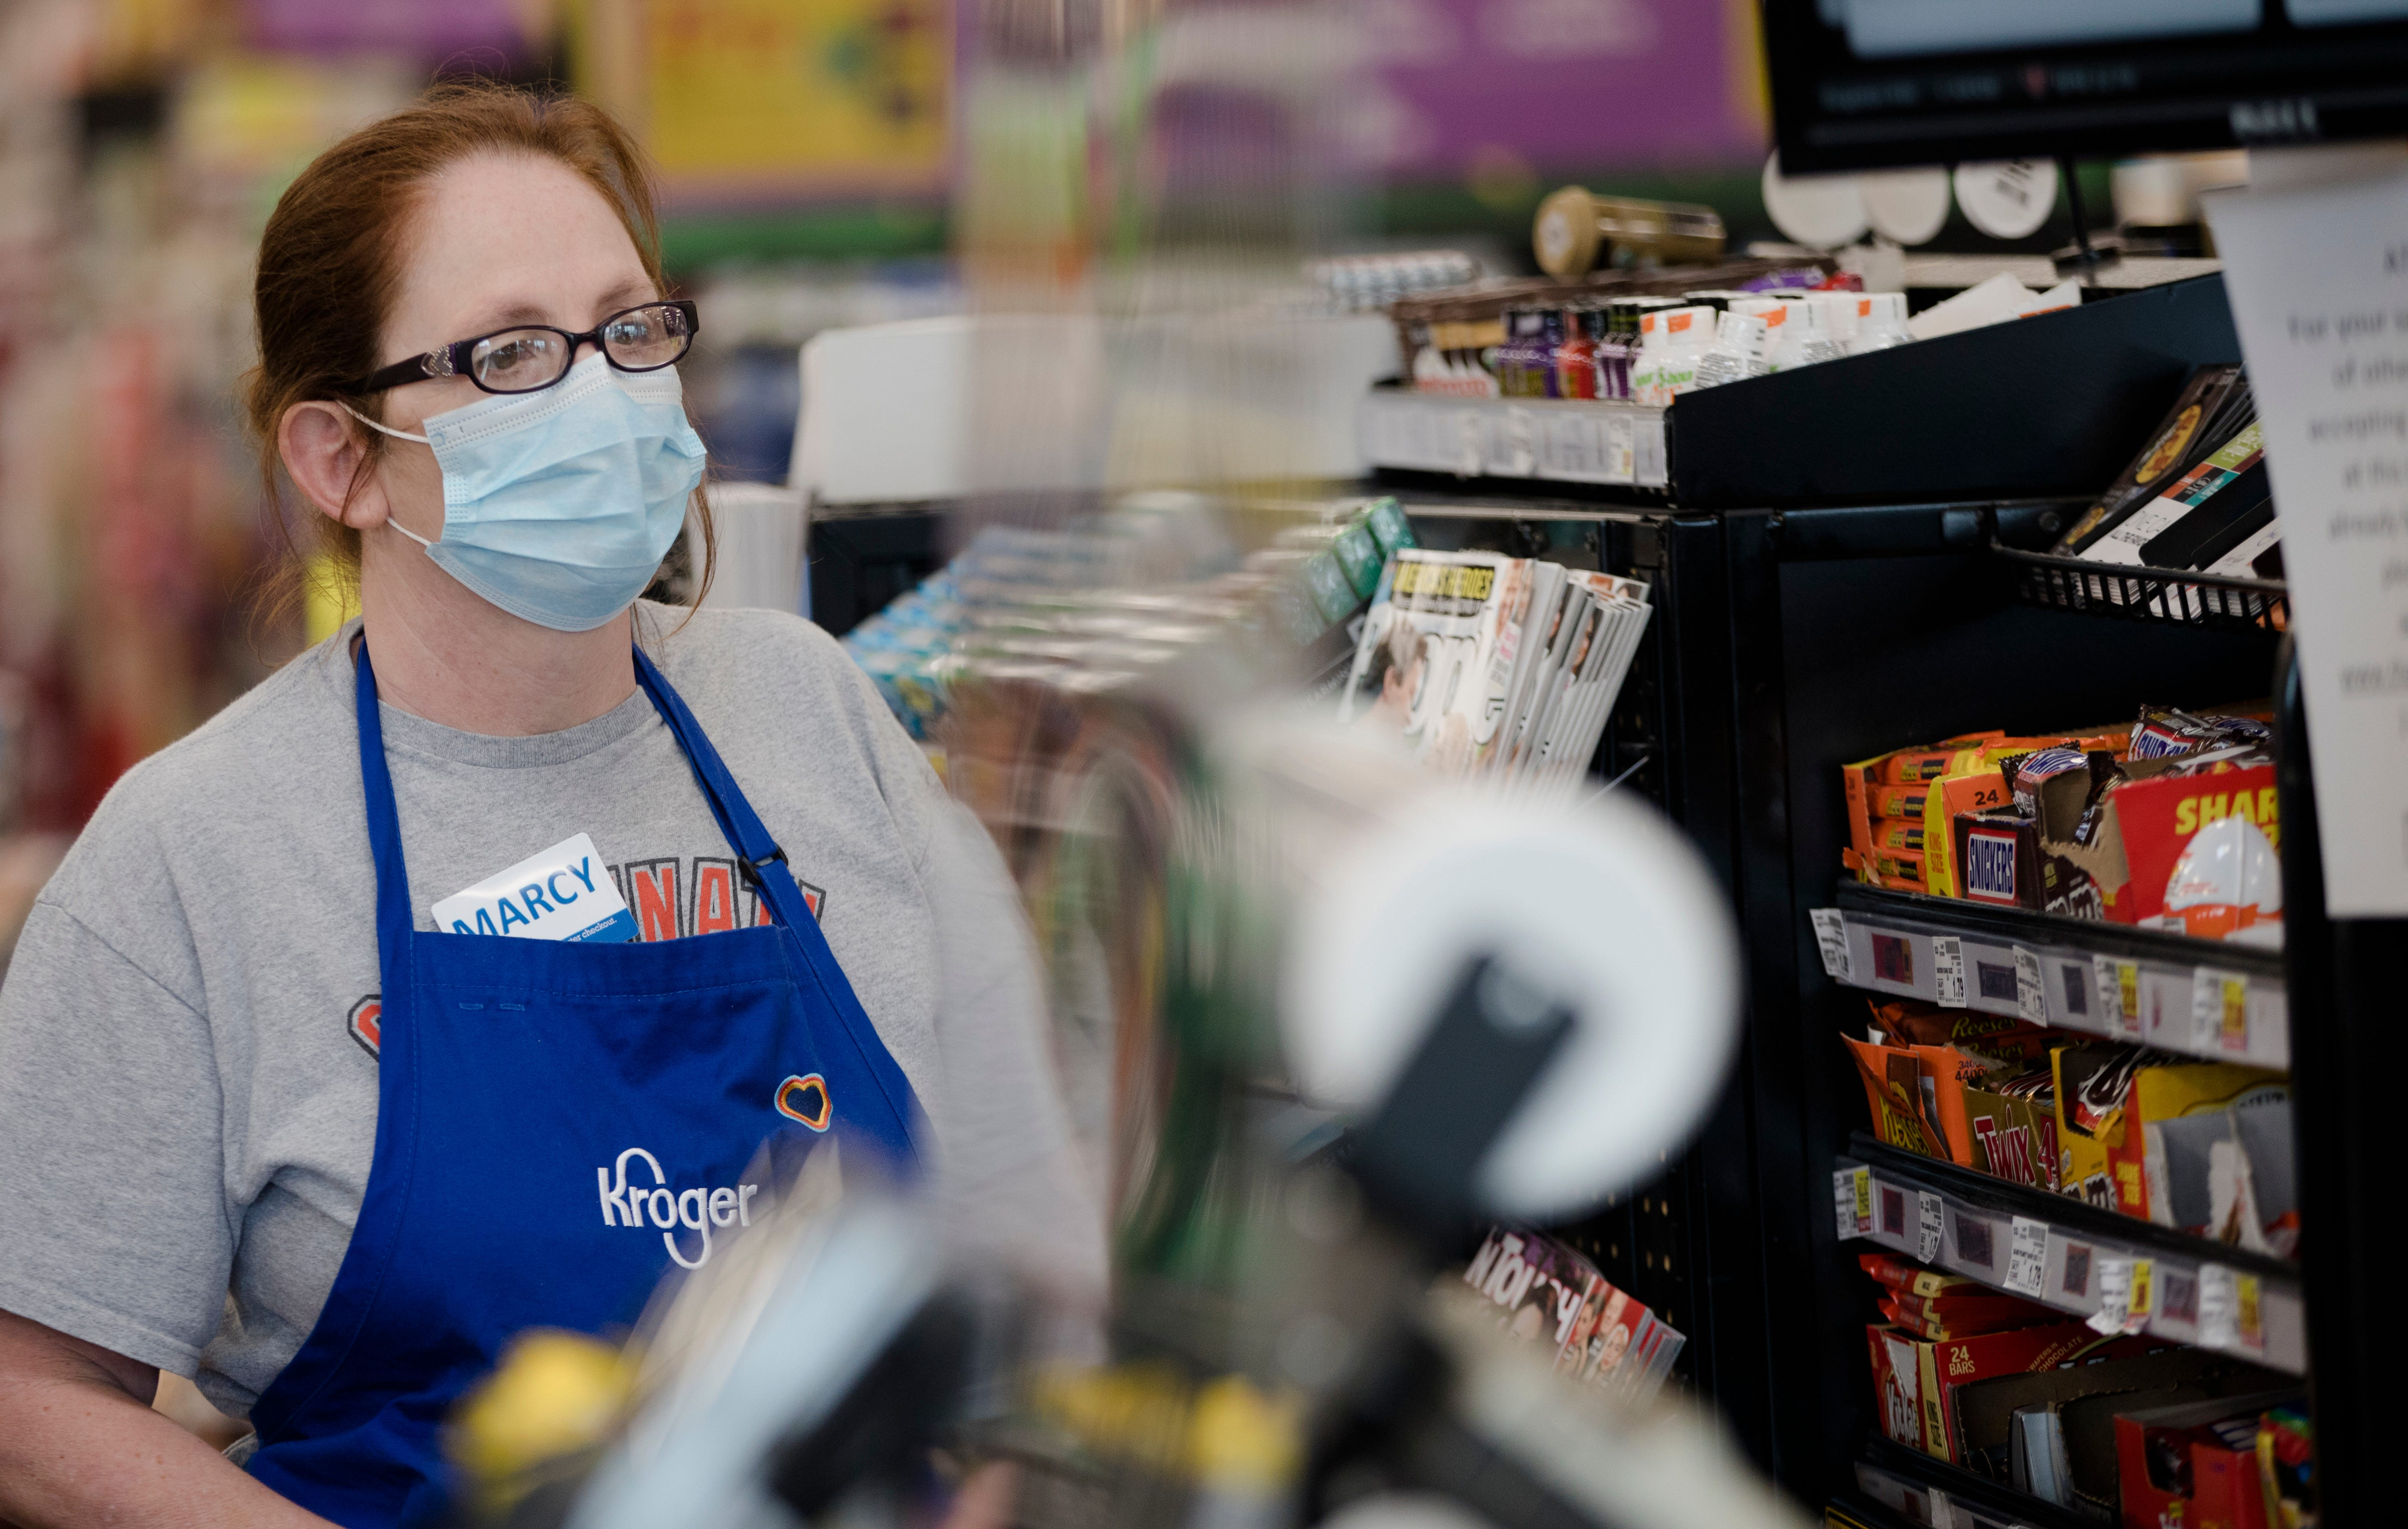 Kroger will pay workers $100 to get vaccinated against COVID-19